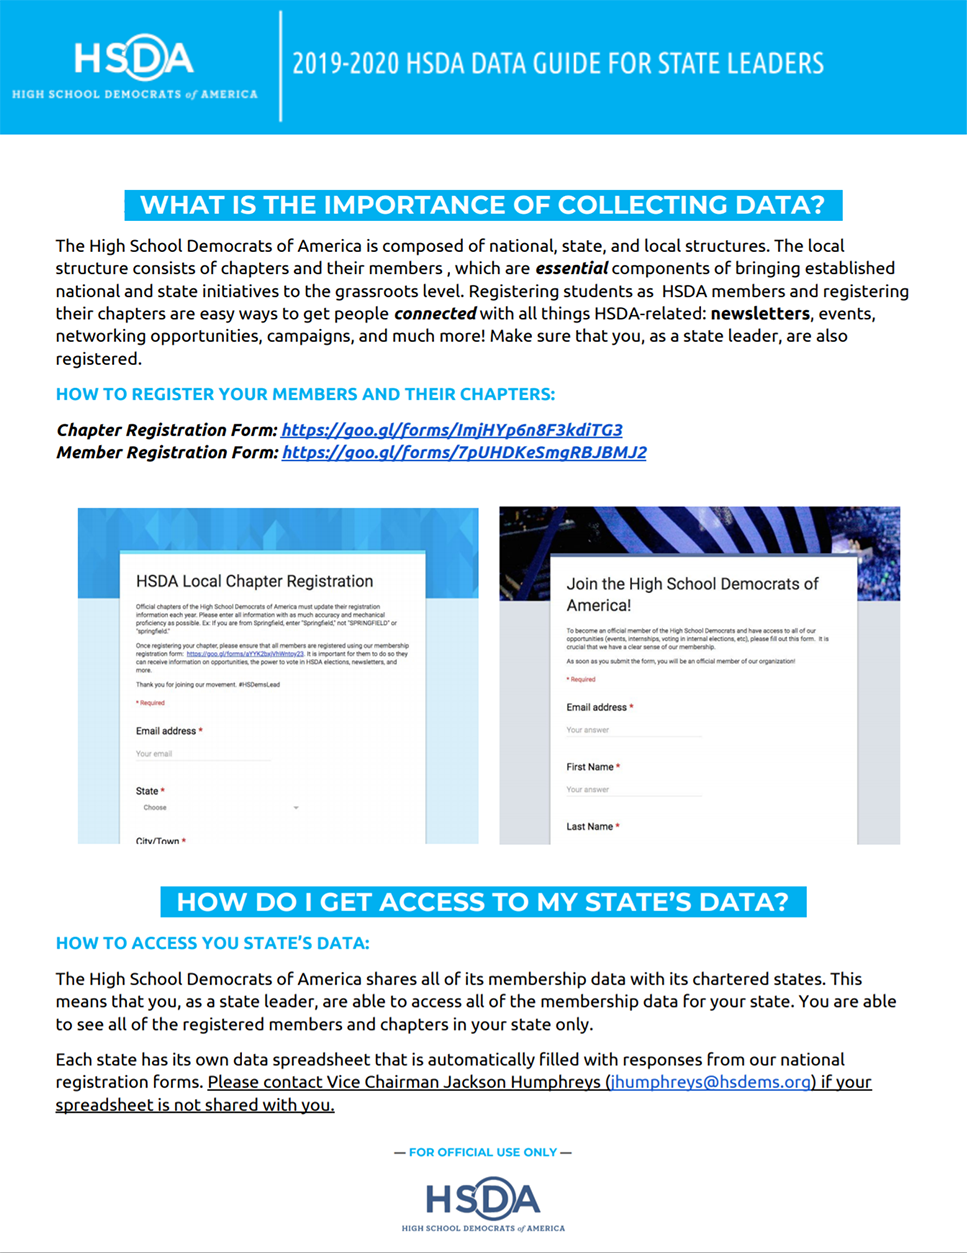 state-data-guide.png